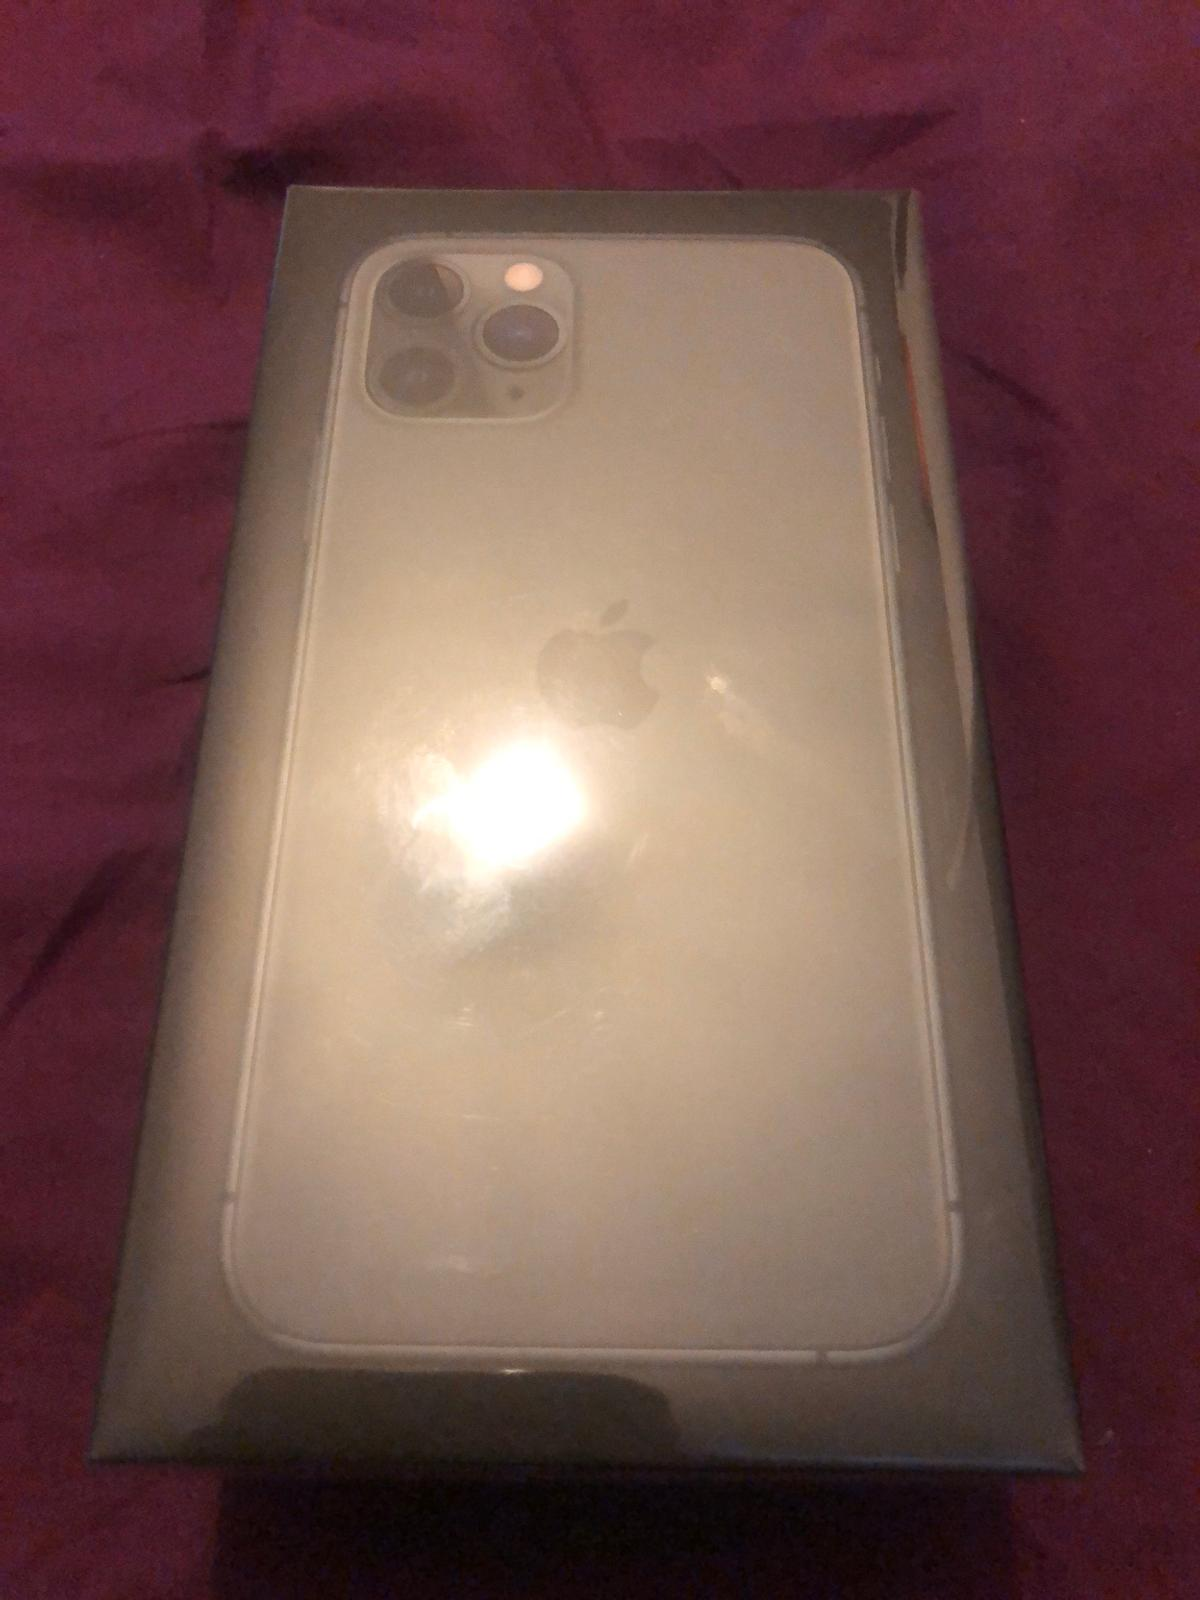 Brand new iPhone 11 Pro 512 GB Sealed Unlocked RRP£1400 Haven't been opened Collection and same day delivery can be arranged if within a certain distance